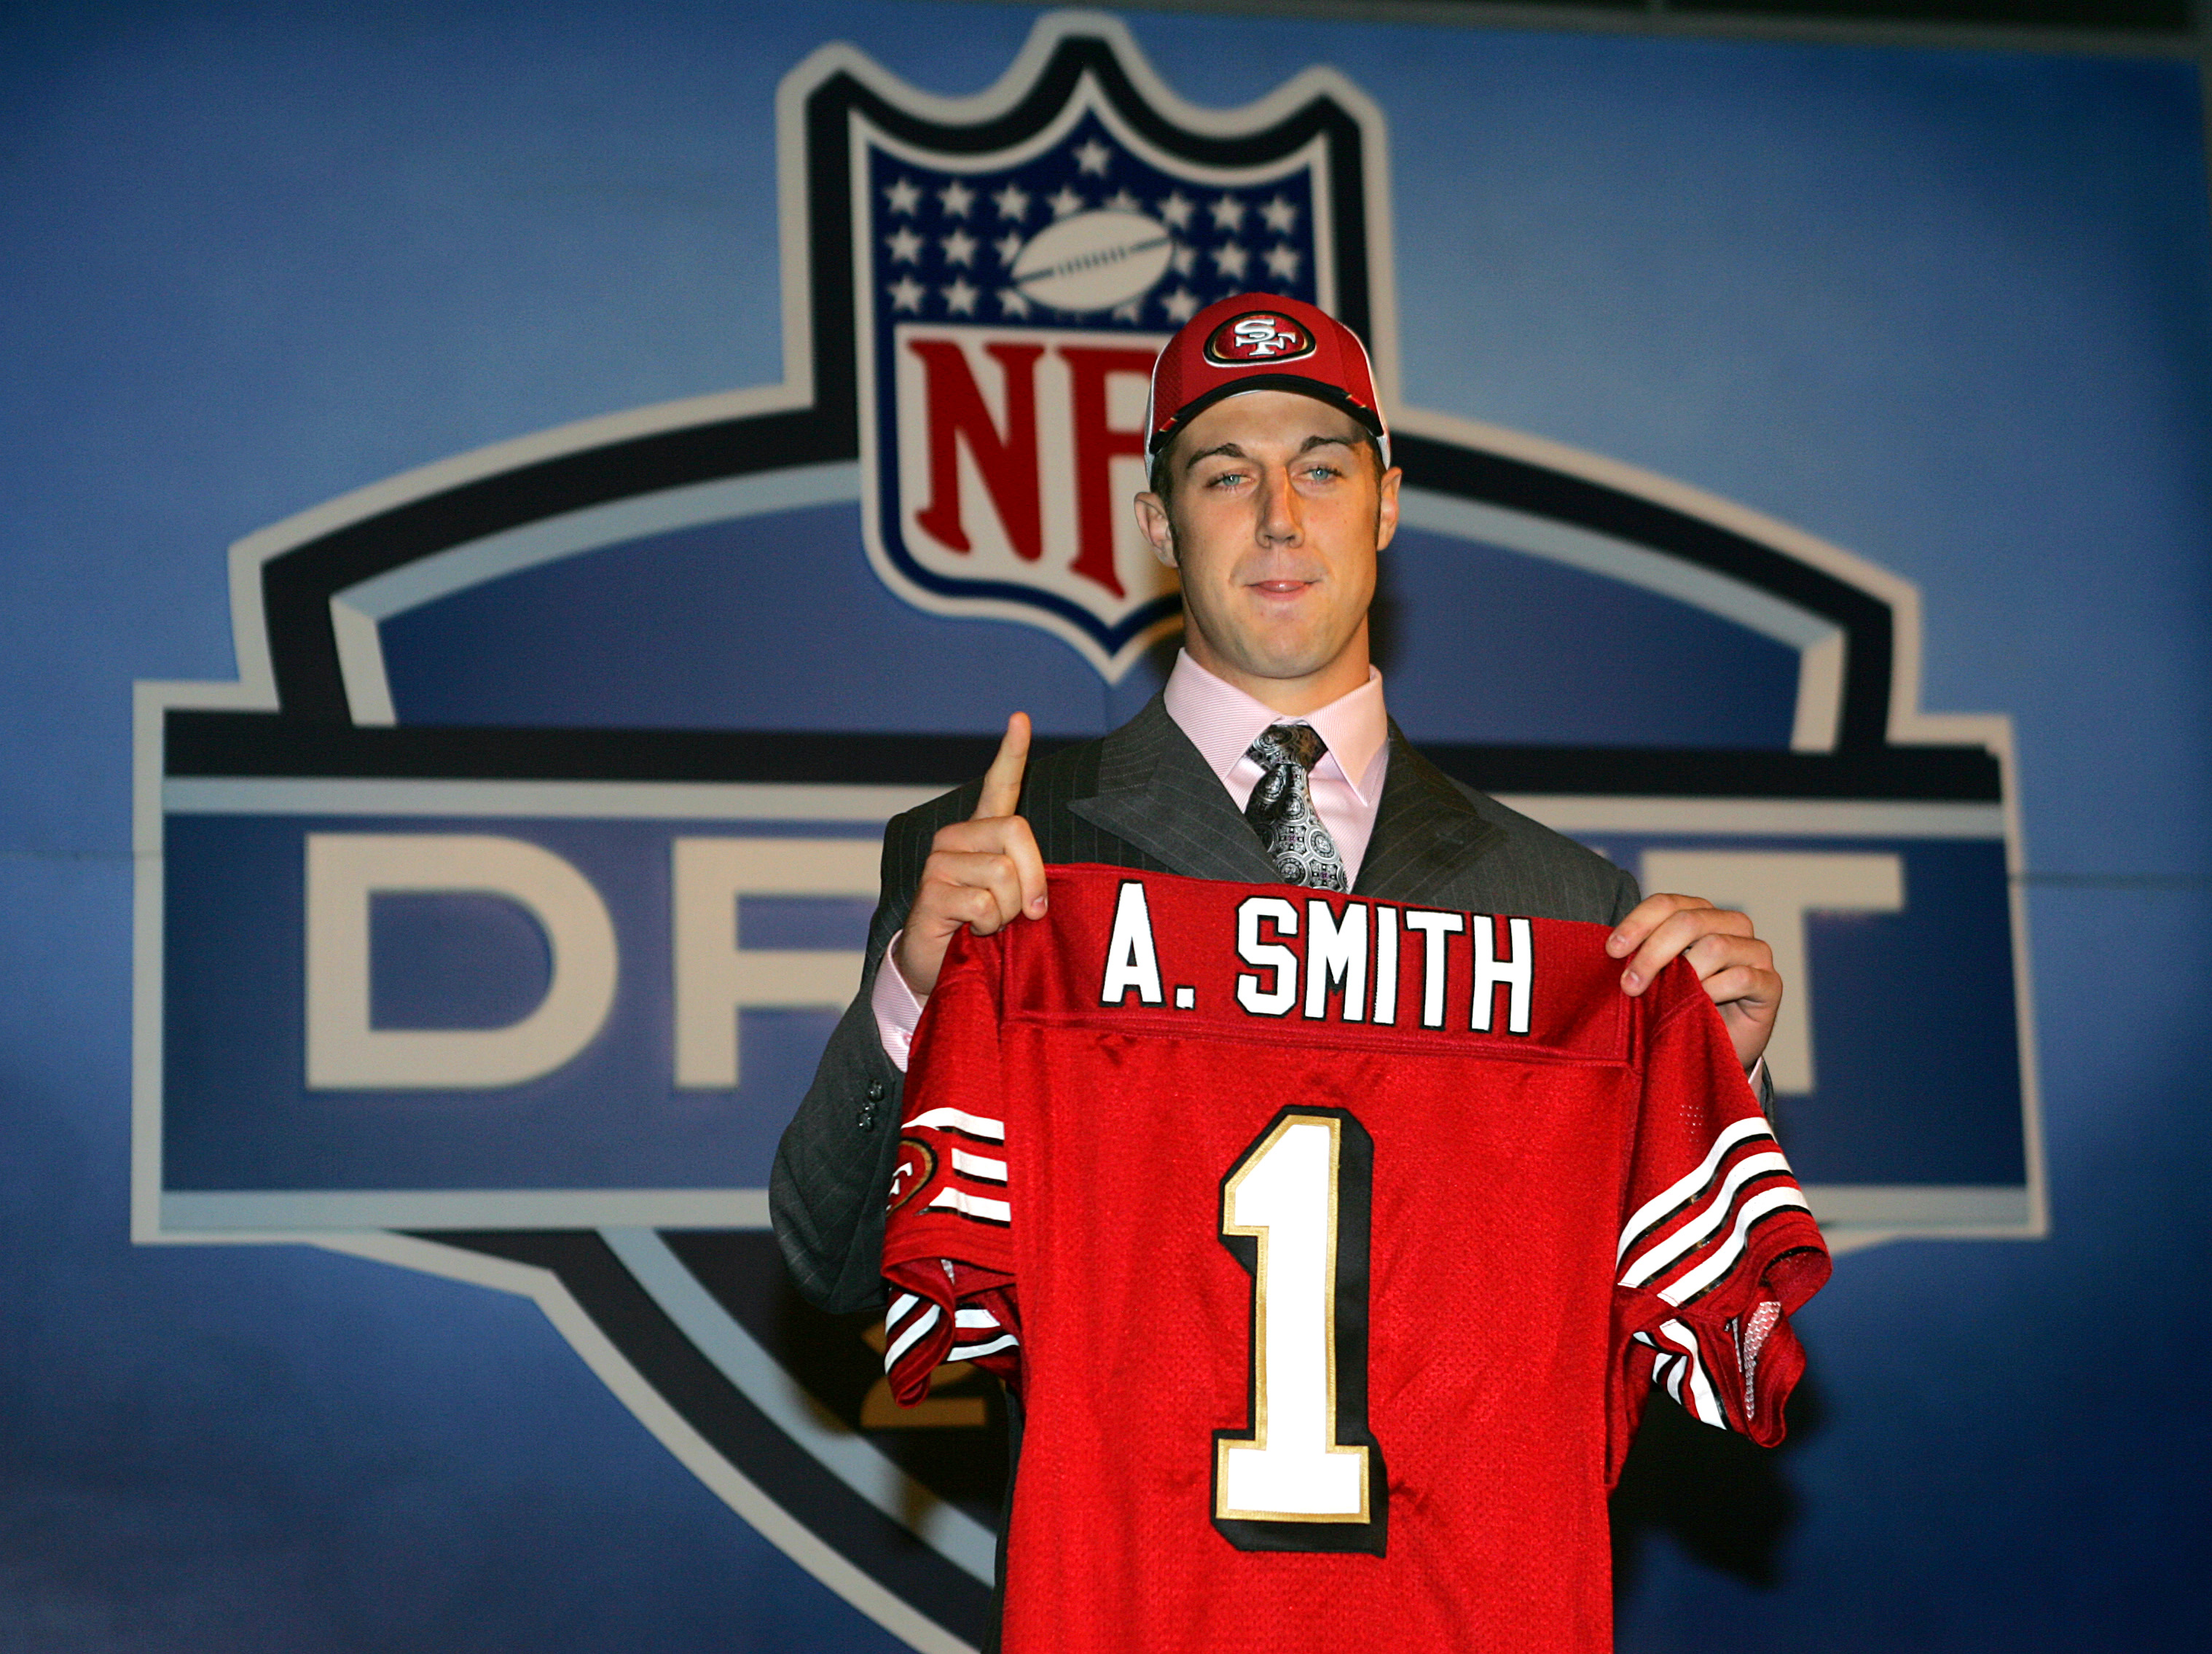 Alex Smith Reveals Going No. 1 Overall 'Added to My Anxiety'